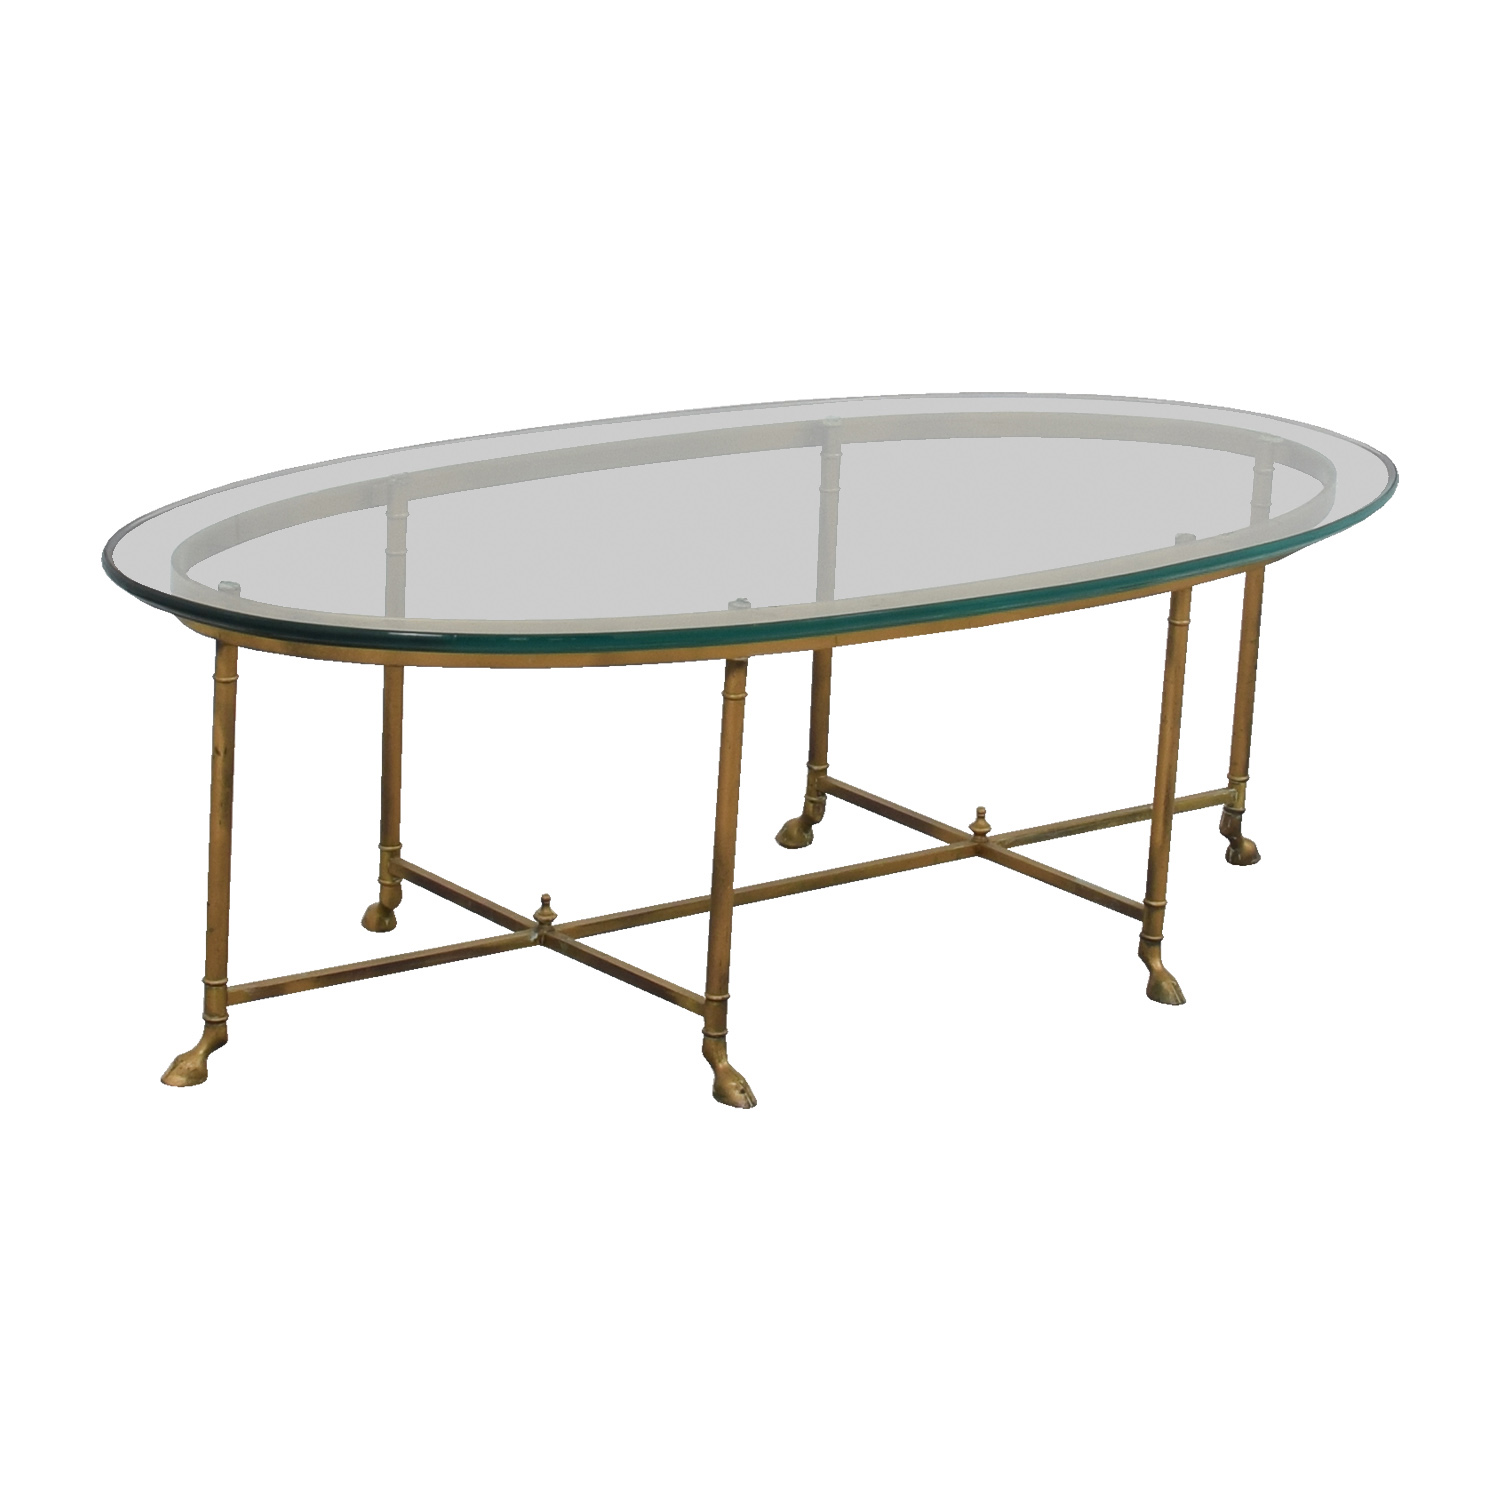 Small Brass And Glass Coffee Tables: Oval Glass & Brass Coffee Table / Tables